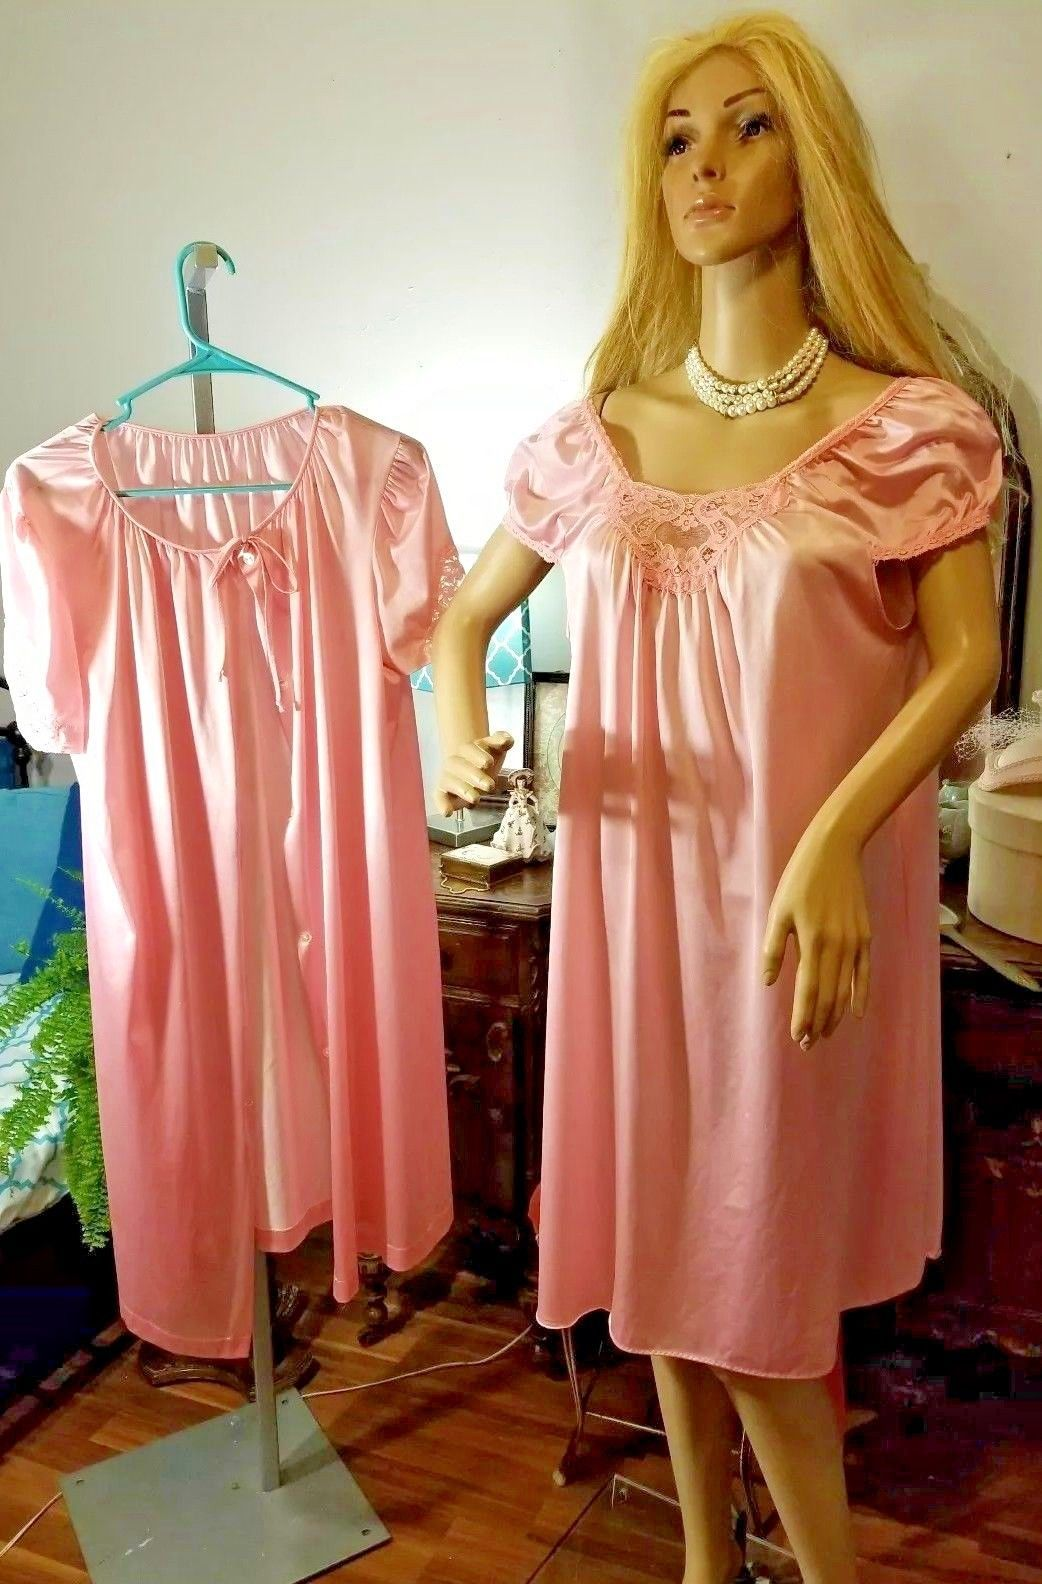 d83c074963 VINTAGE Lorraine PEIGNOIR ROBE LACE NIGHTGOWN SET small PINK sexy shiny  soft pvt